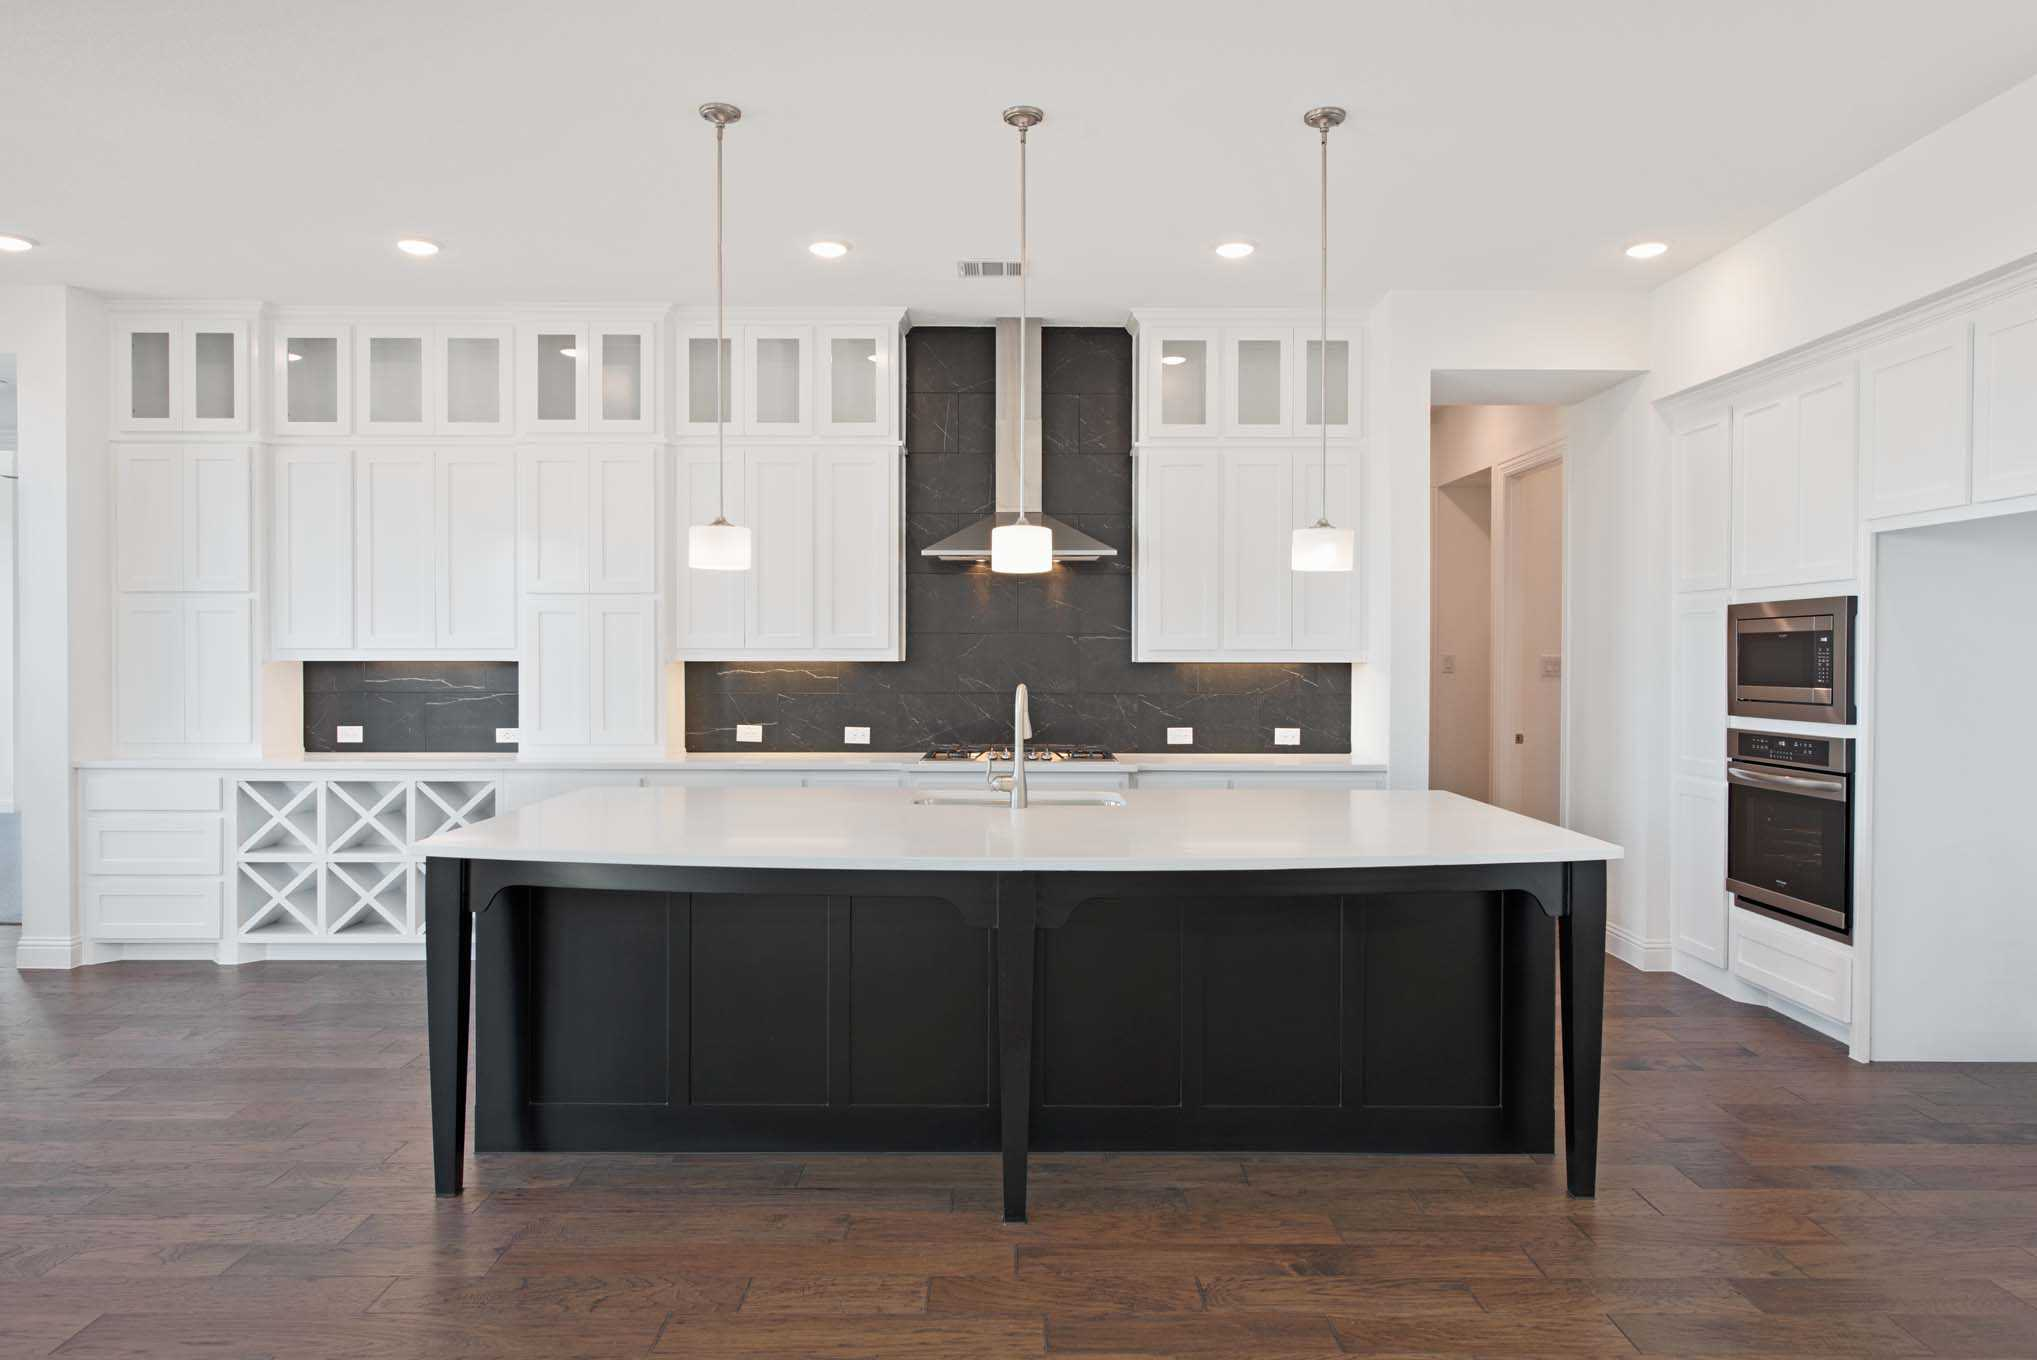 Kitchen featured in the Plan 220 By Highland Homes in San Antonio, TX